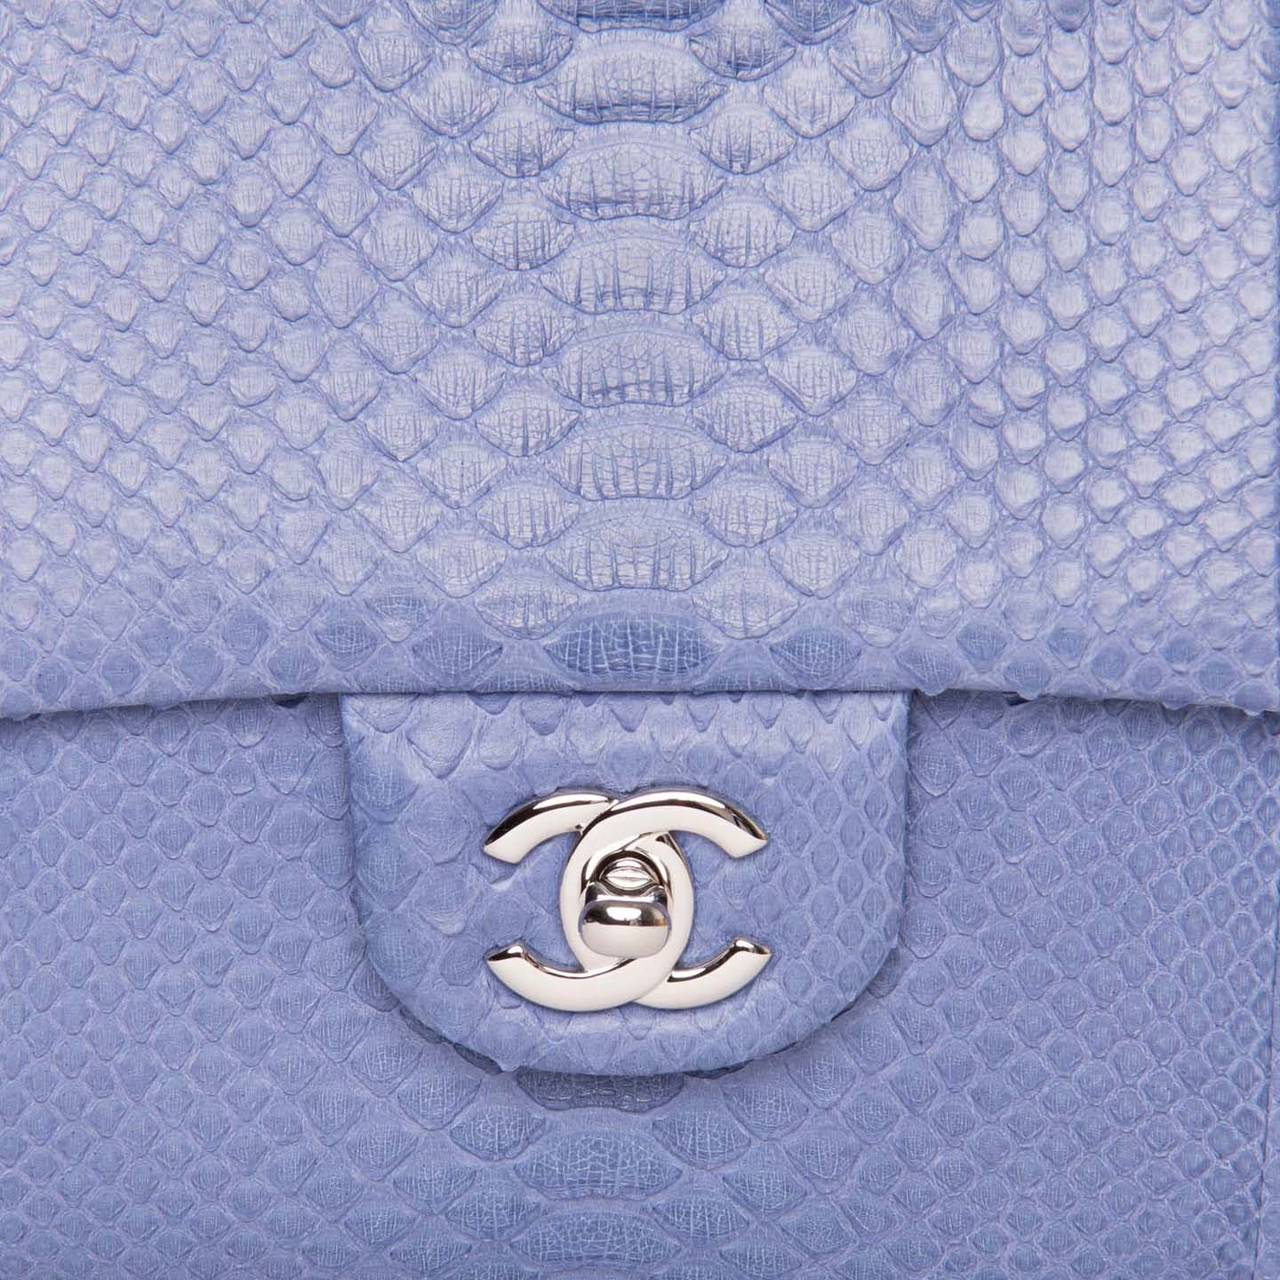 Chanel Periwinkle Python Small Clutch Bag With Strap In New Condition For Sale In Brooklyn, NY